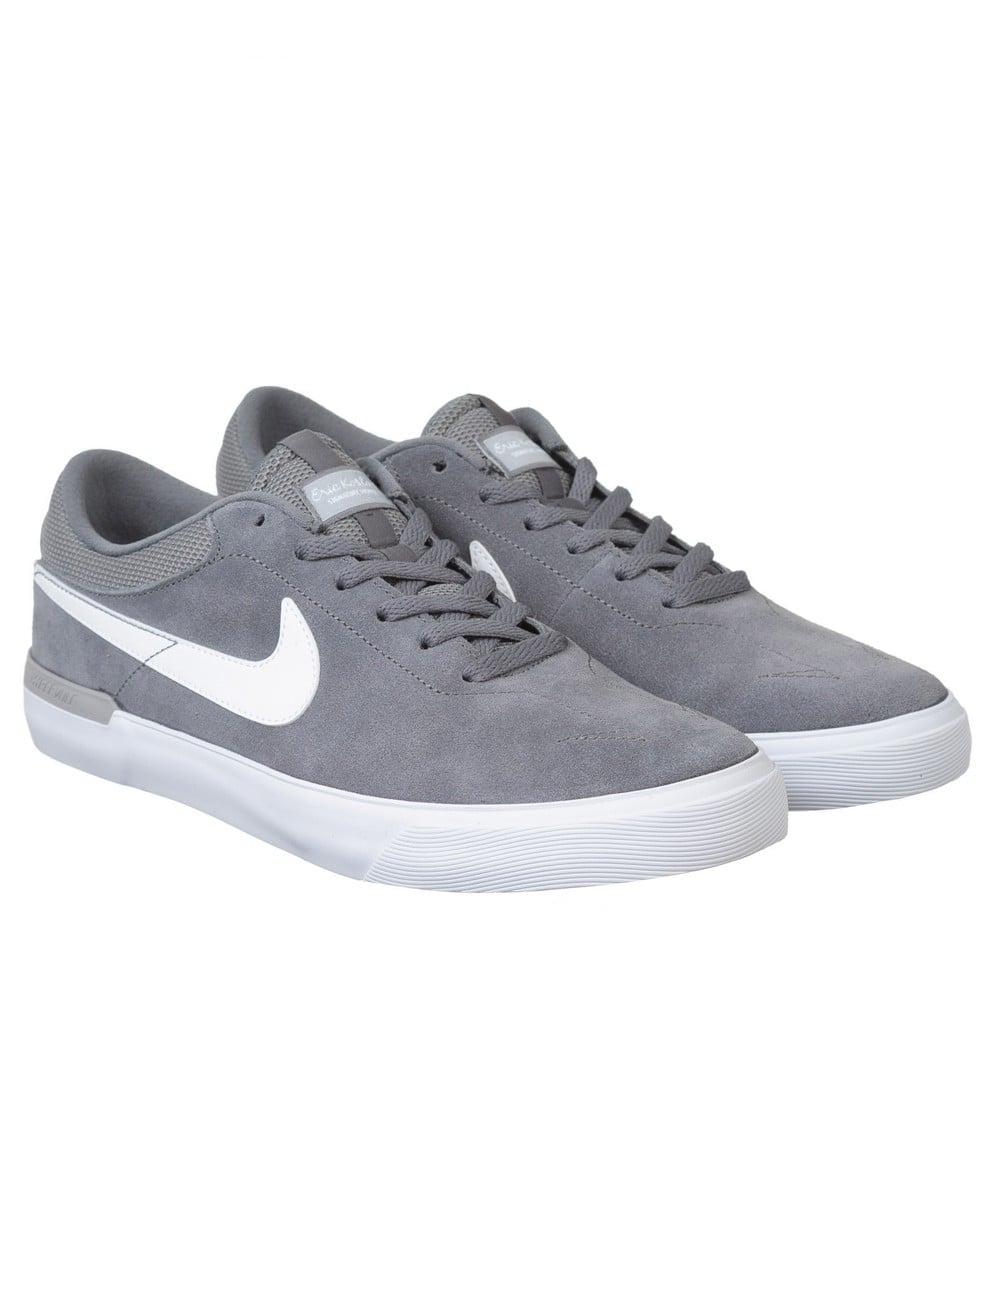 Nike SB Eric Koston Hypervulc Shoes - Cool Grey White - Footwear ... 47d250439